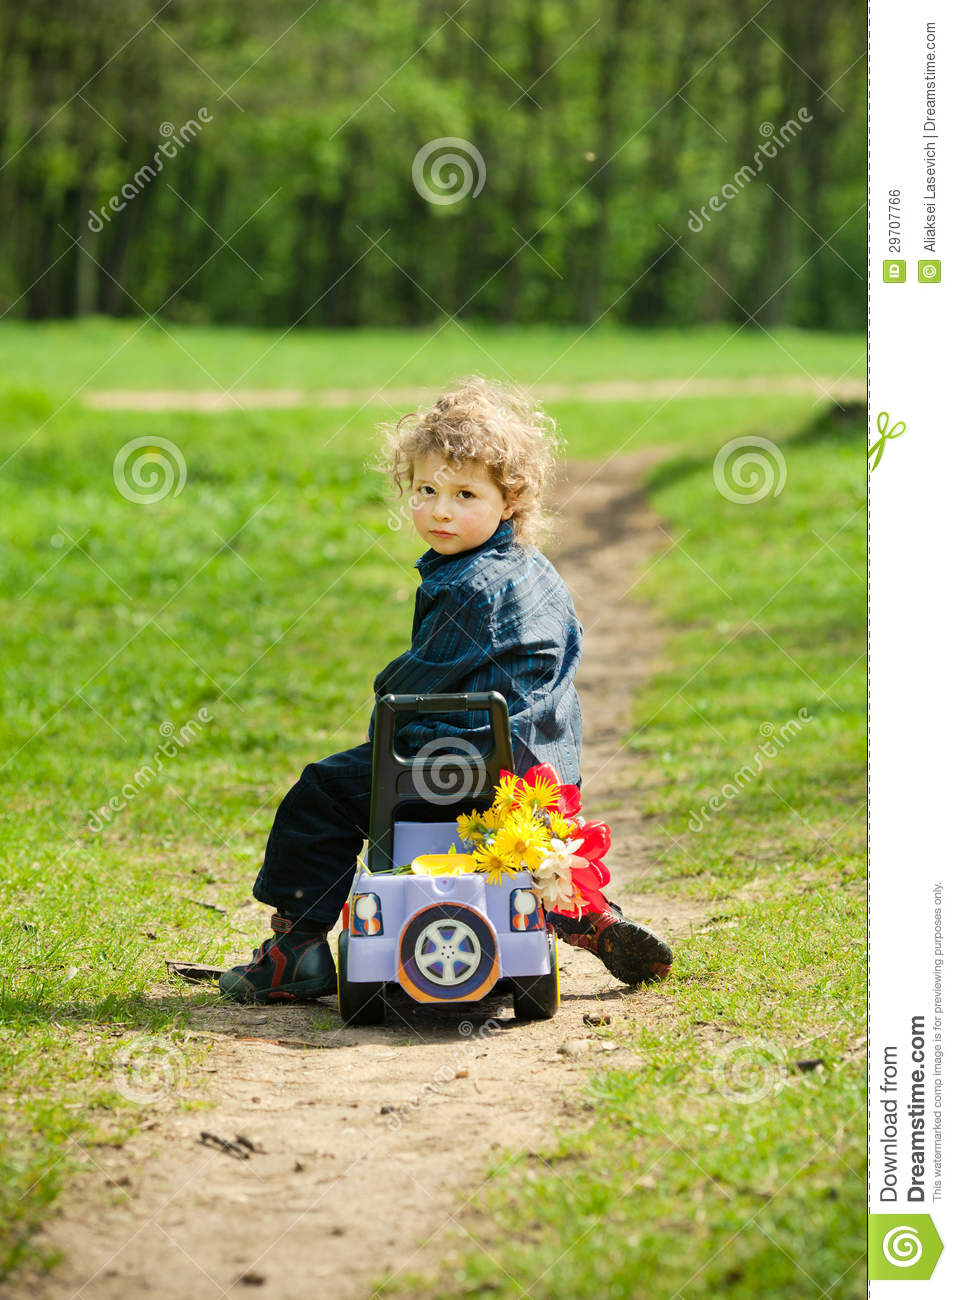 Little Boy With Toy Car : Little boy on a toy car in park royalty free stock image